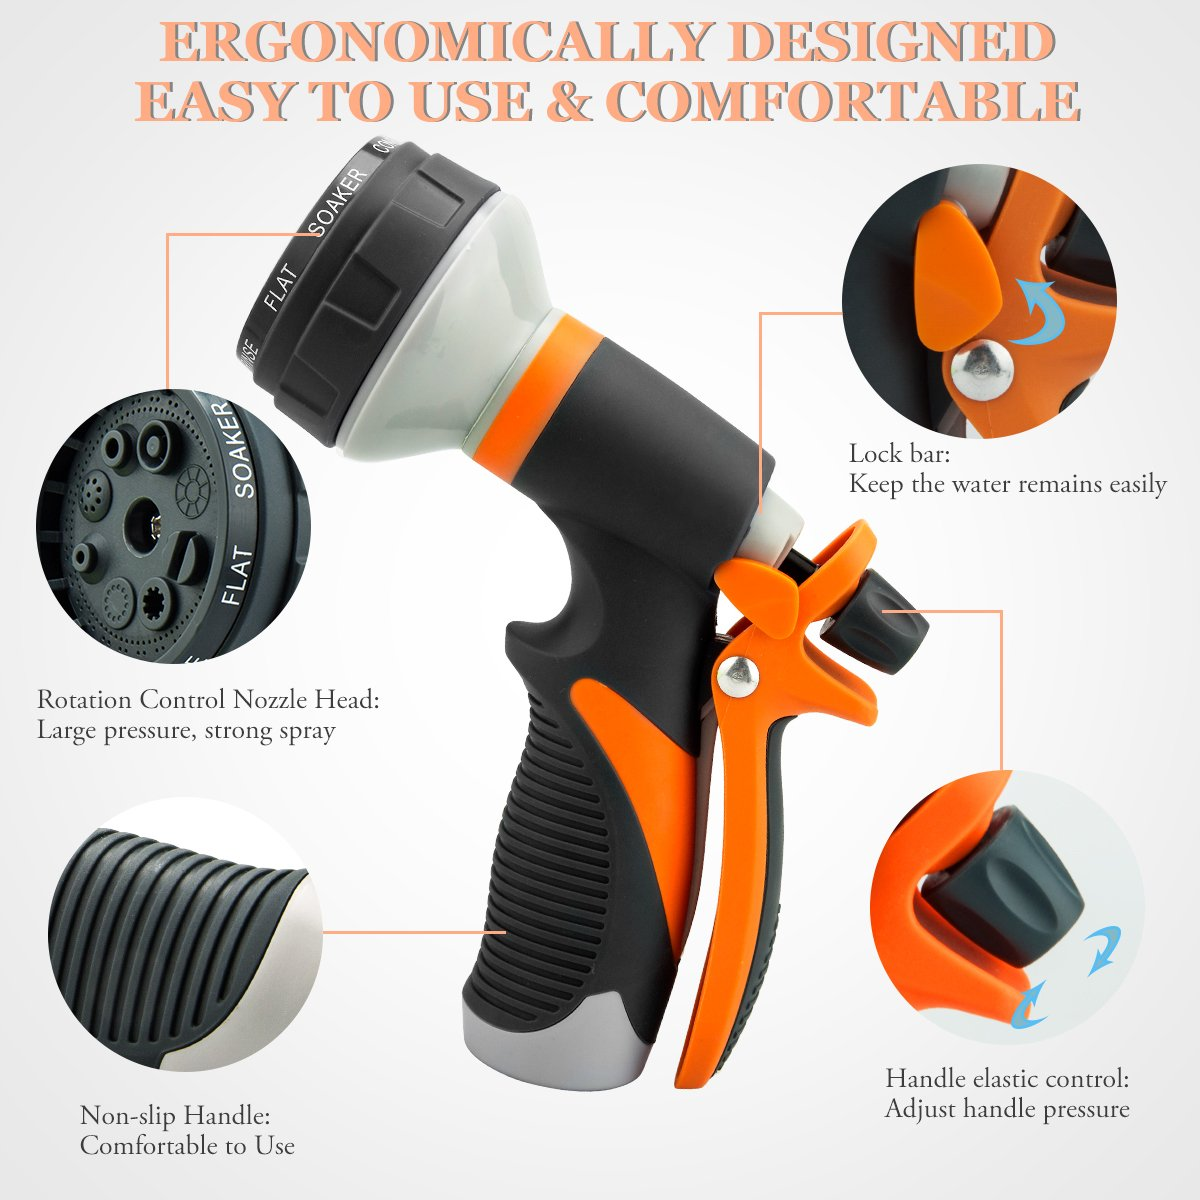 Hose Nozzle Garden Hose Nozzle Hose Spray Nozzle Leak Free High Pressure Heavy Duty 8 Pattern For Watering Plant Washing Cars Pets Shower by Easynozzle (Image #6)